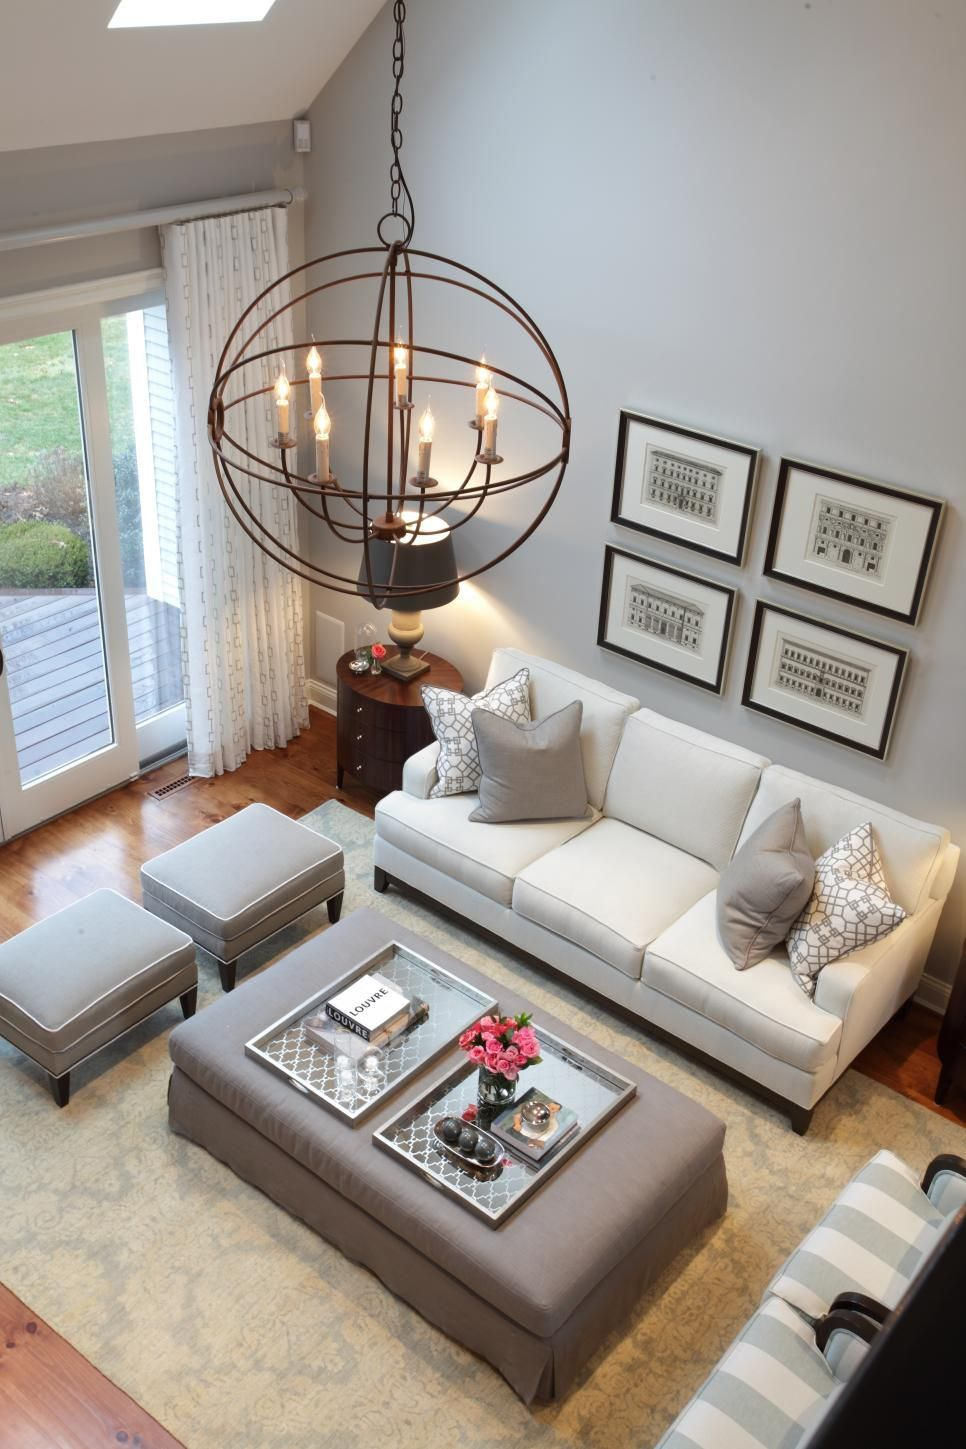 High ceilings and stylish design this living room uses a beautiful palette of soft gray and white an orb chandelier and black and white framed art